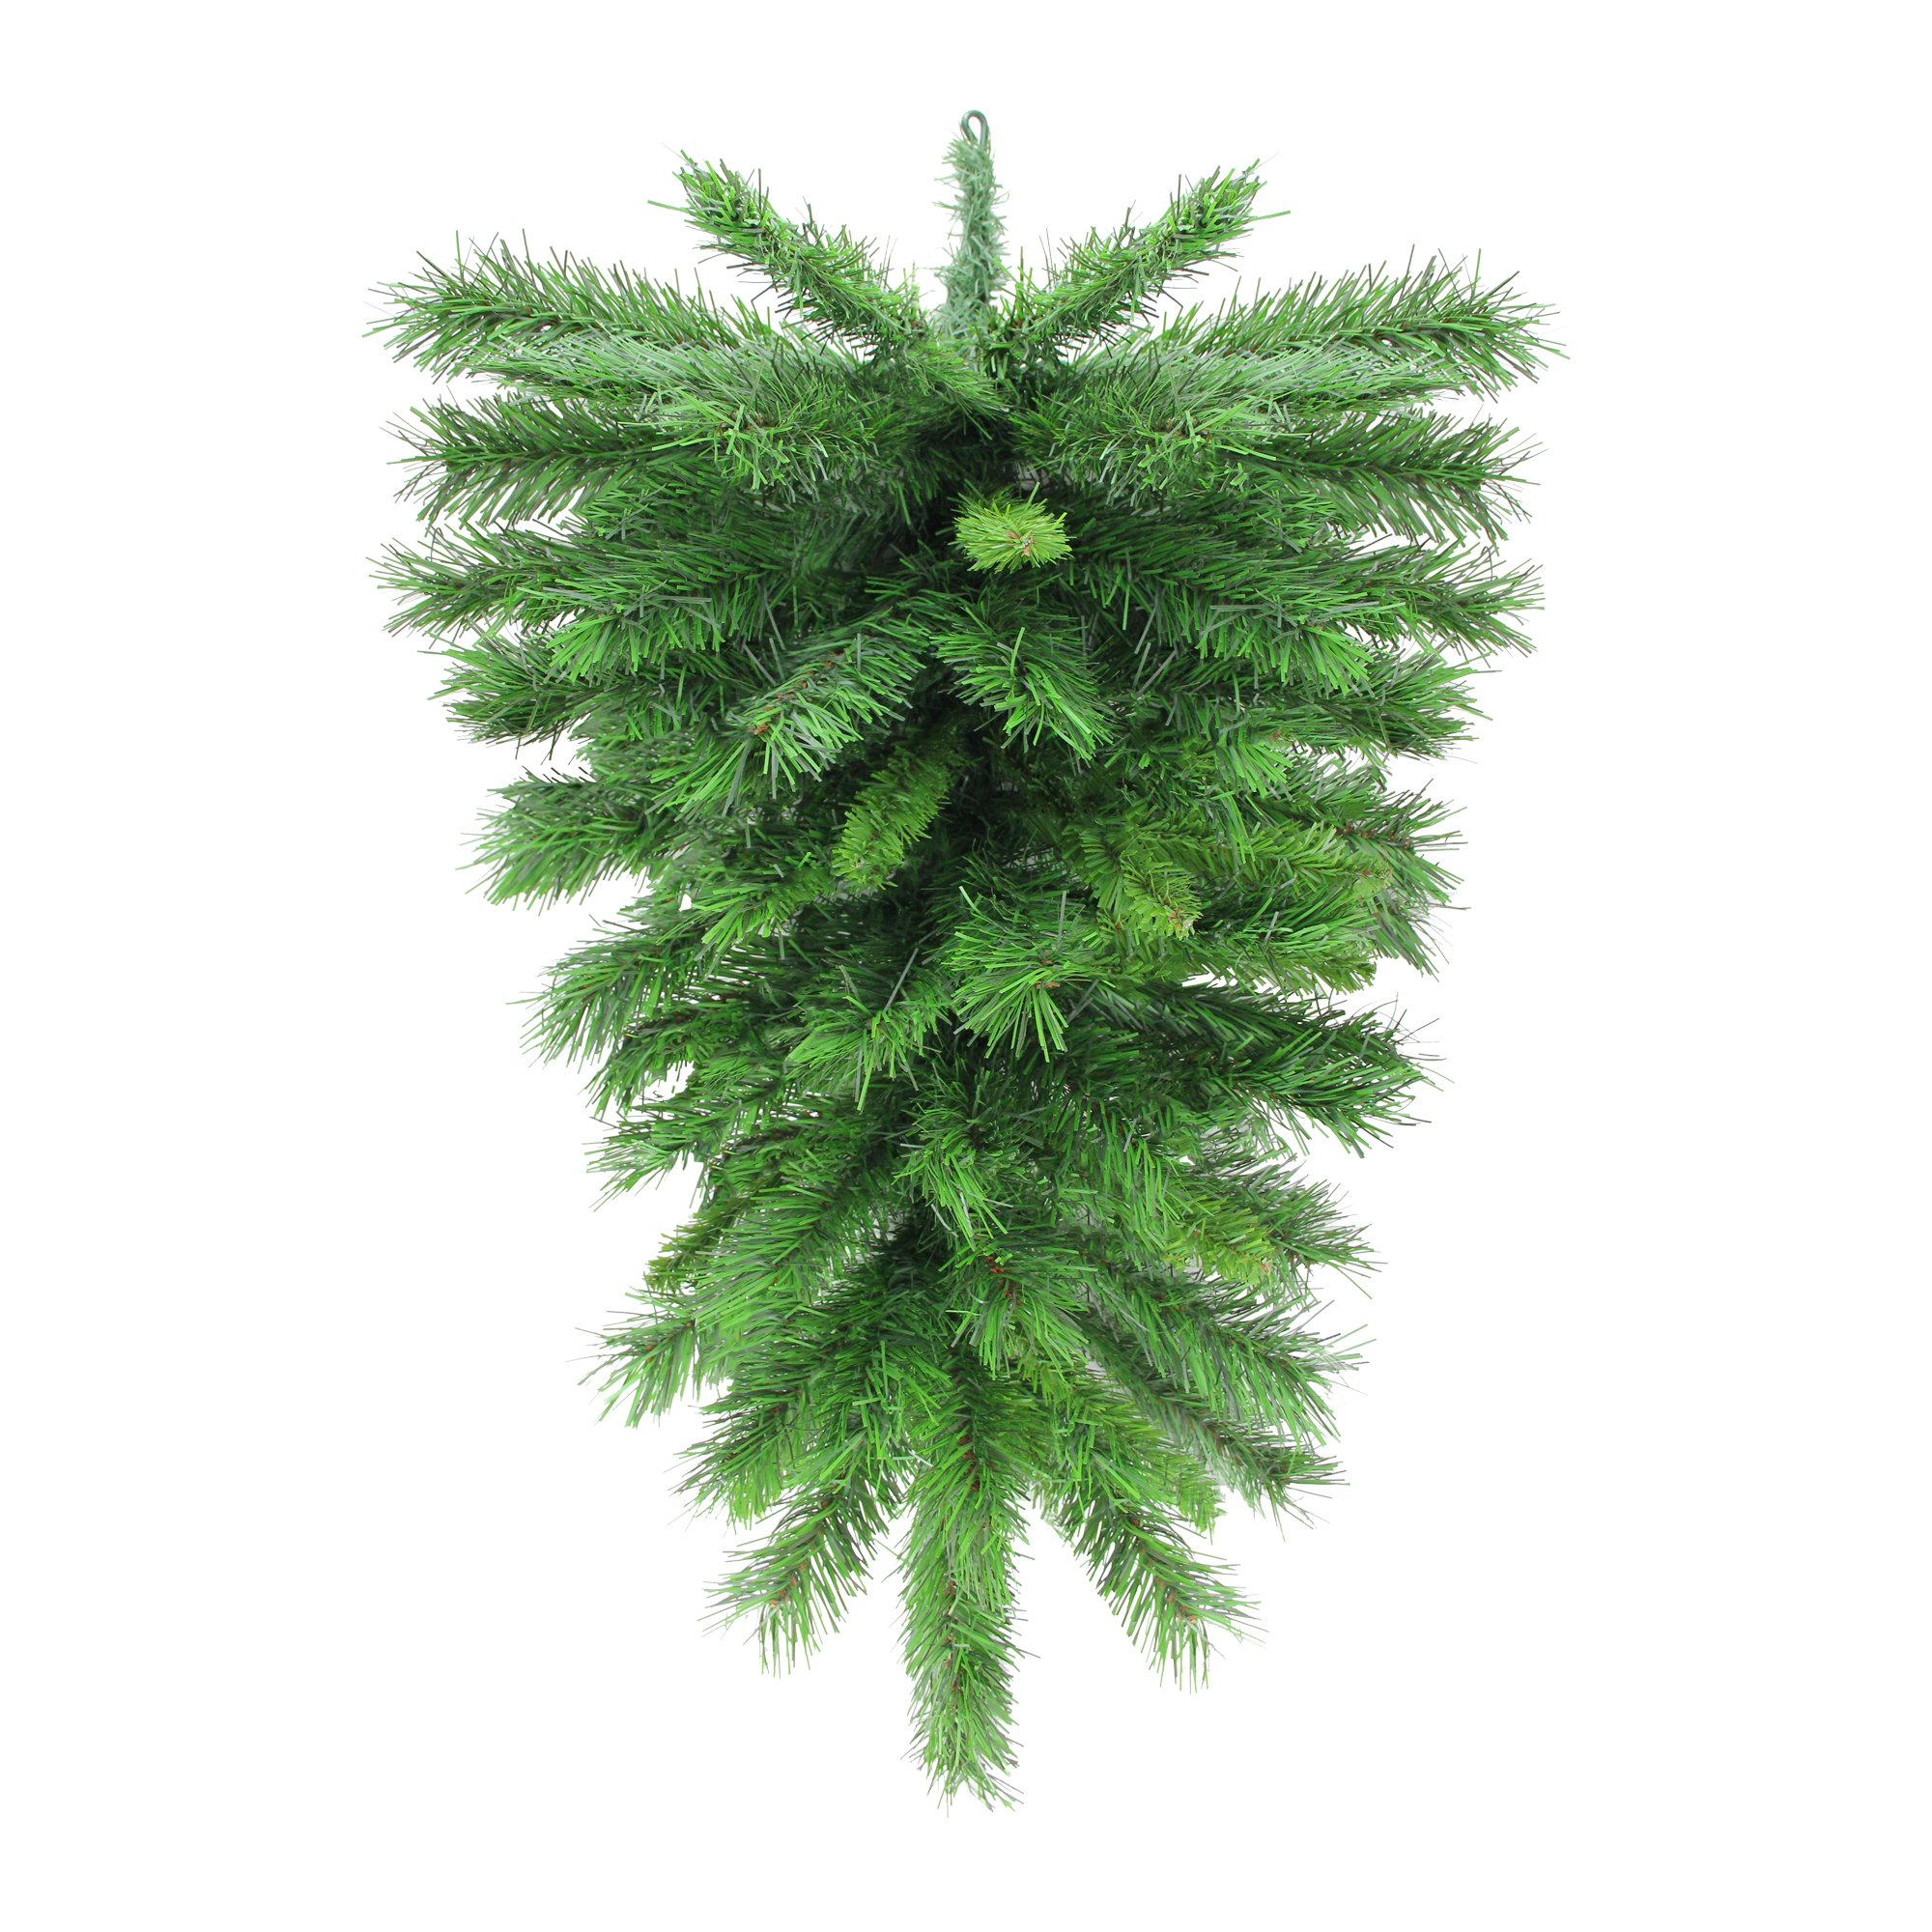 Northlight 30'' Mixed Green Pine Artificial Christmas Teardrop Swag - Unlit by Northlight